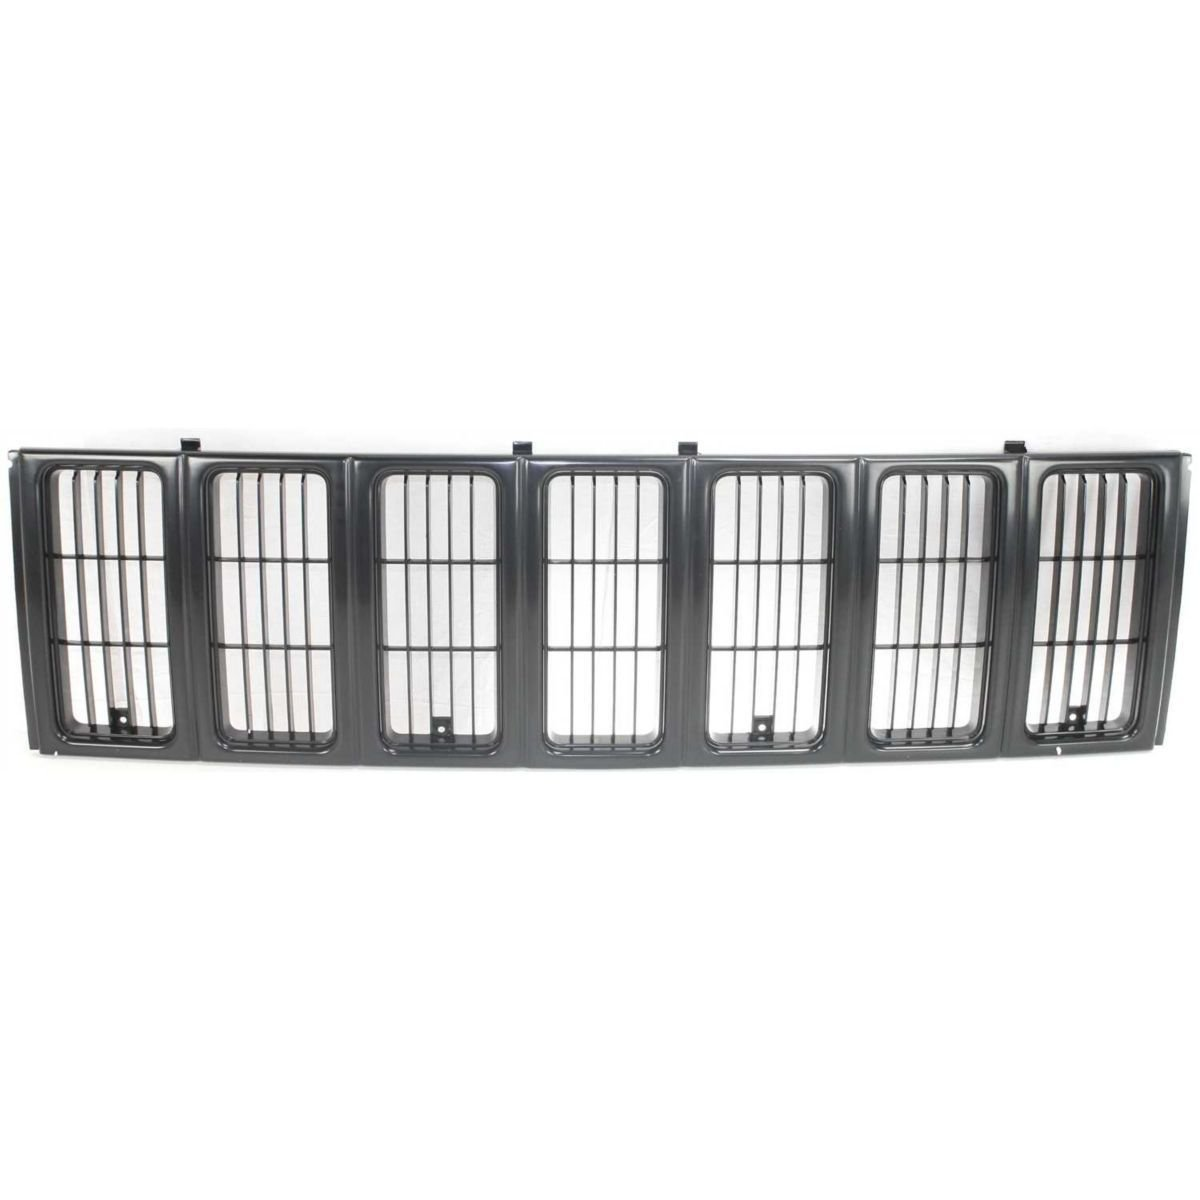 DAT NEW 1997 - 2001 Jeep Cherokee MIDSIZE SE / SPORT MODEL BLACK PLASTIC FRONT GRILLE GRILL ASSEMBLY CH1200208 DAT AUTO PARTS